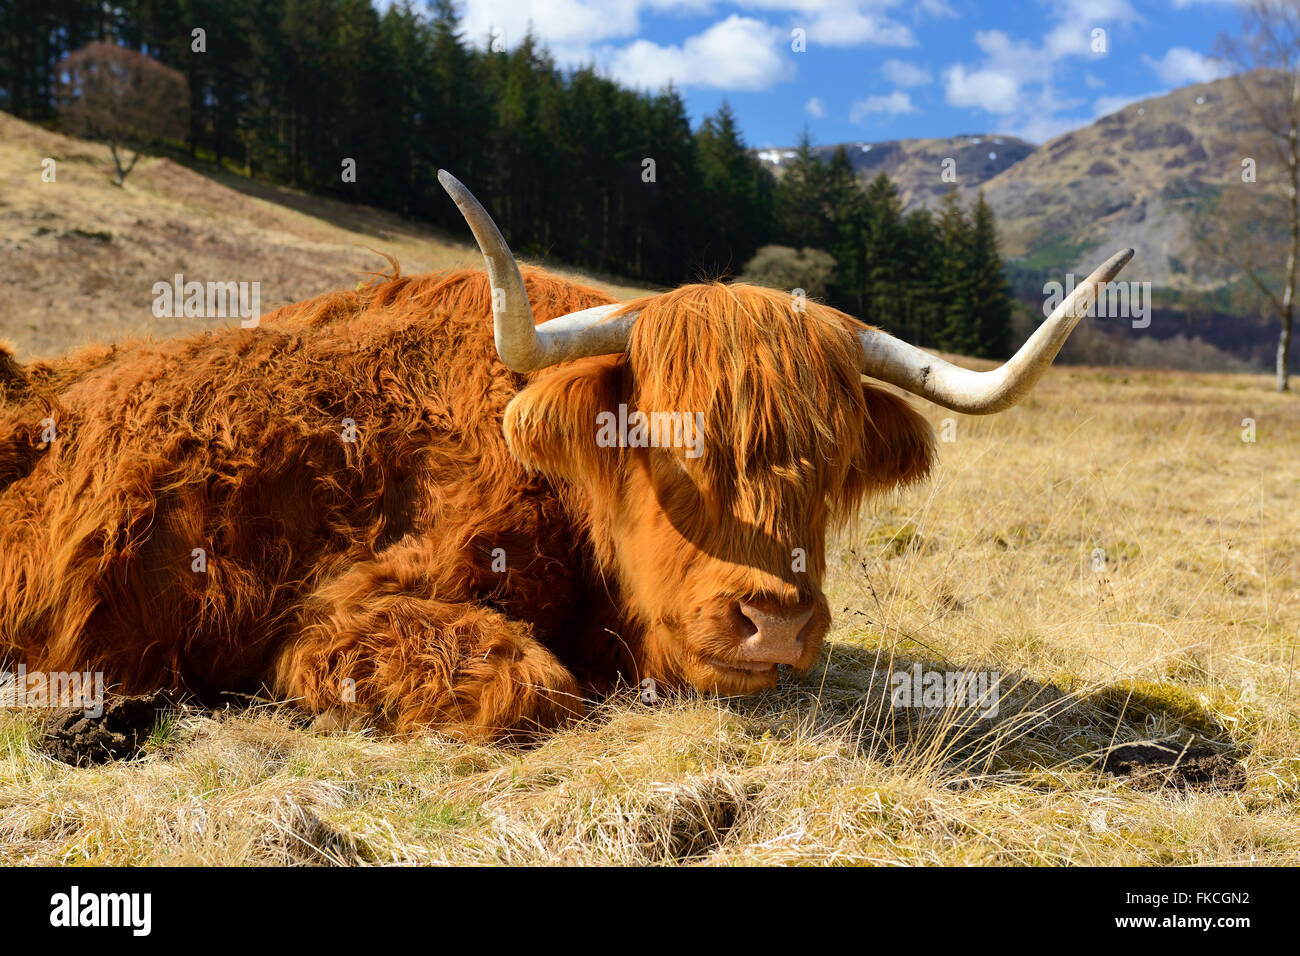 Vache Highland fixant, Forest Drive Achray, Trossachs, Ecosse, Royaume-Uni Photo Stock